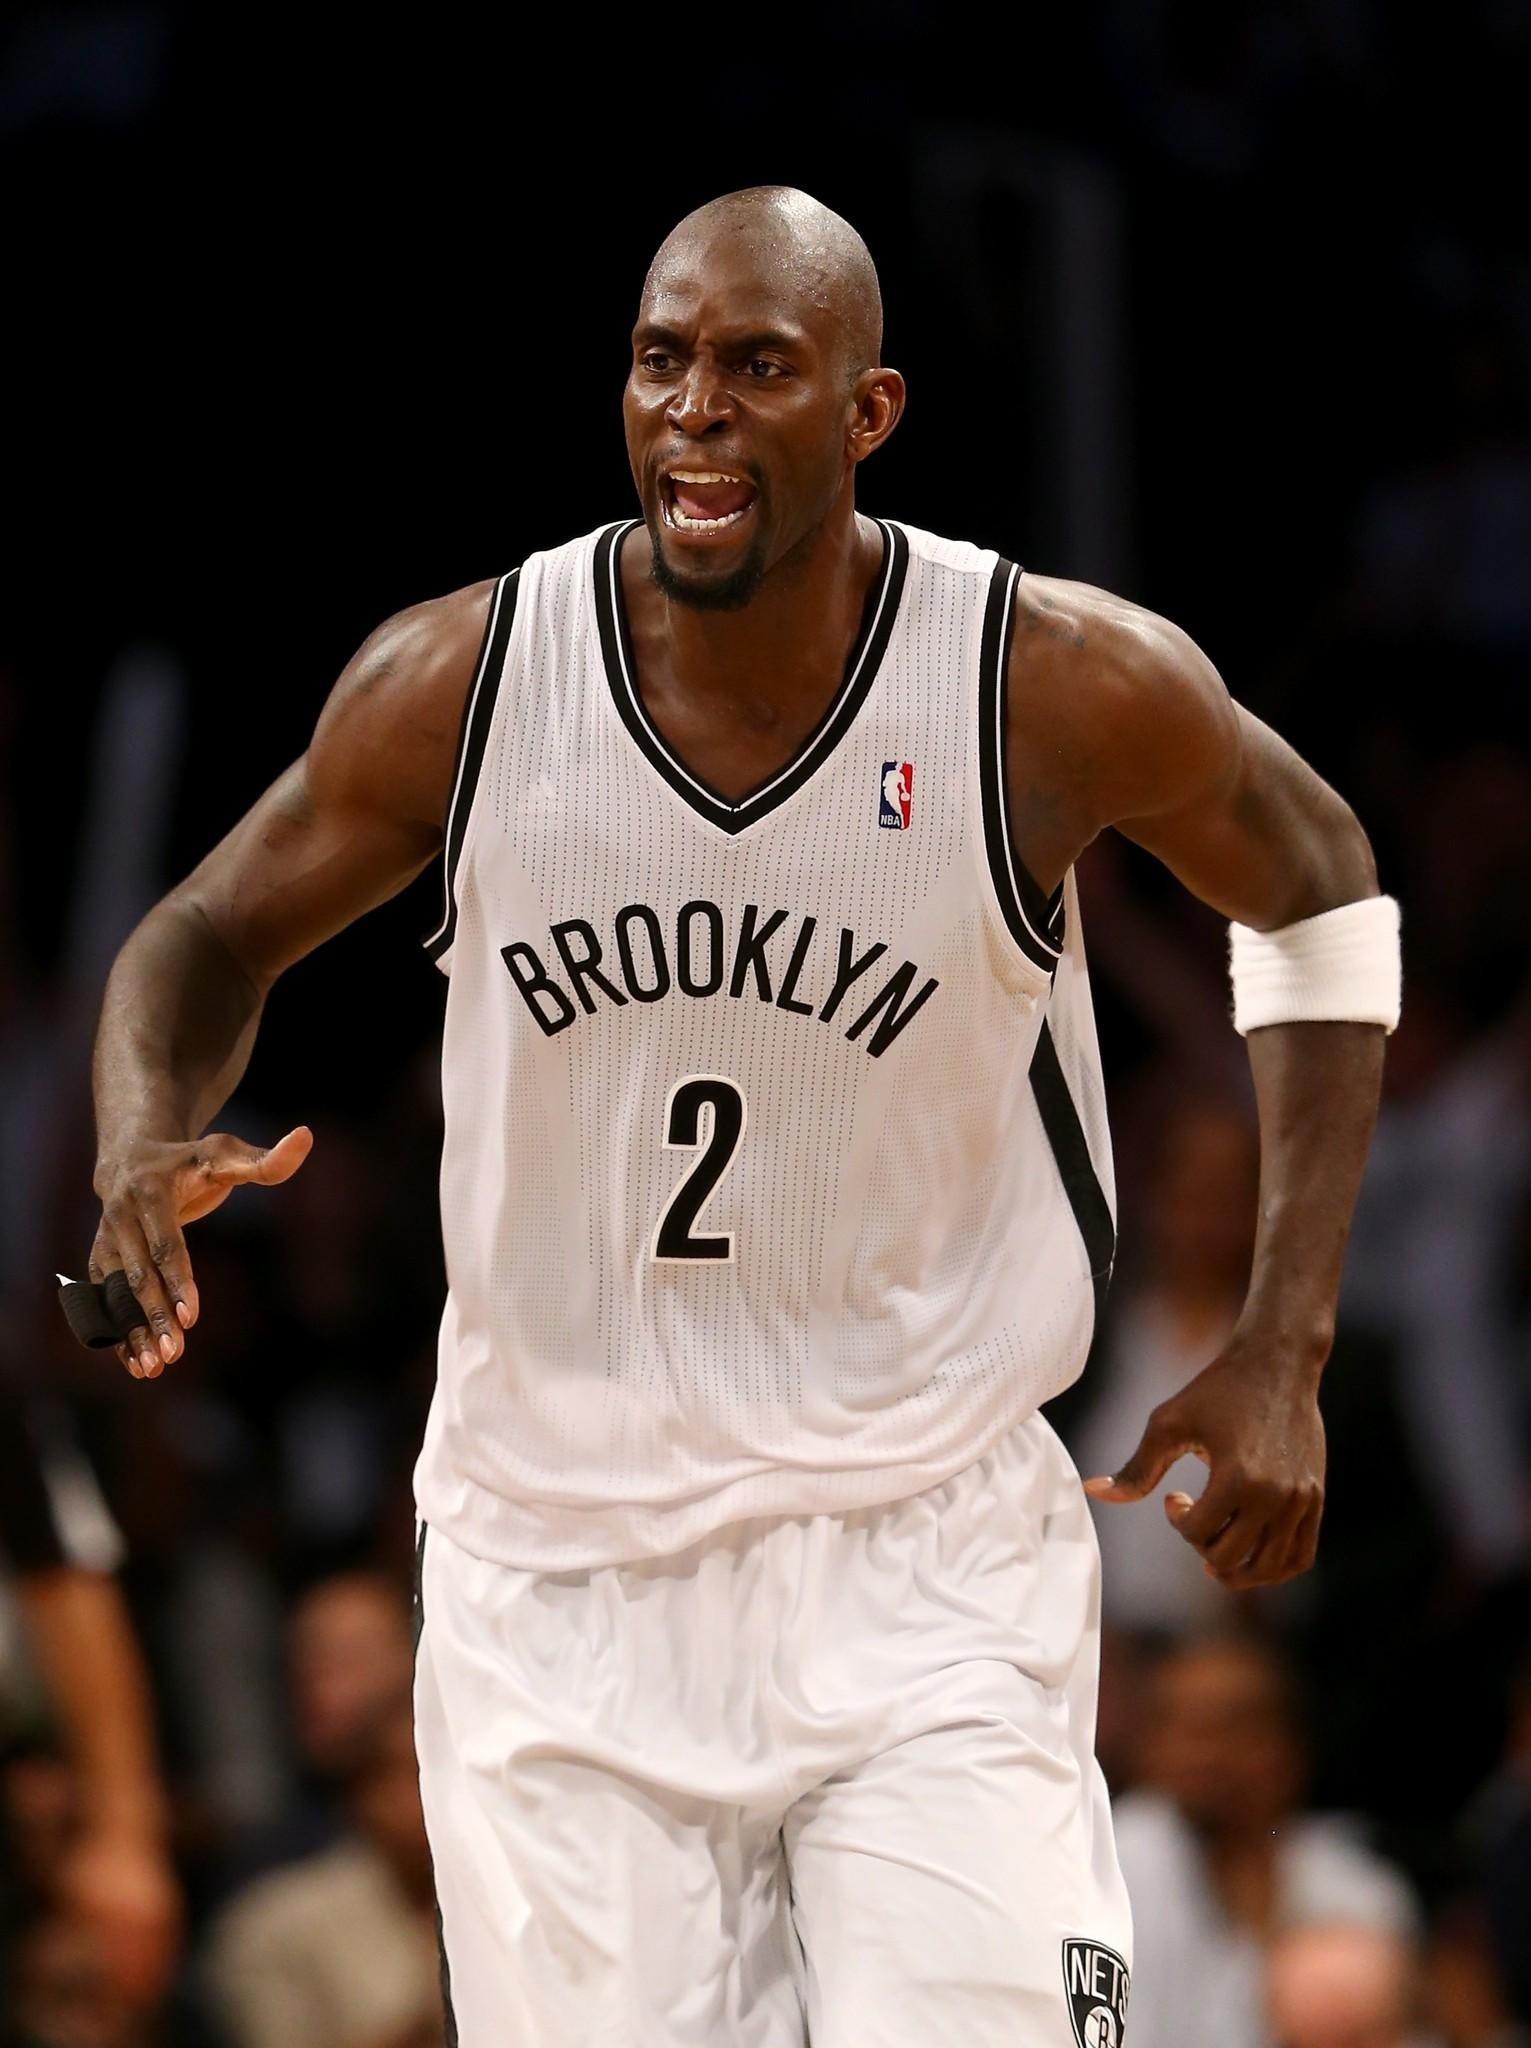 NEW YORK, NY - MAY 02: Kevin Garnett #2 of the Brooklyn Nets celebrates in the second half against the Toronto Raptors in Game Six of the Eastern Conference Quarterfinals during the 2014 NBA Playoffs at the Barclays Center on May 2, 2014 in the Brooklyn borough of New York City. NOTE TO USER: The Brooklyn Nets defeated the Toronto Raptors 97-83. User expressly acknowledges and agrees that, by downloading and/or using this photograph, user is consenting to the terms and conditions of the Getty Images License Agreement. (Photo by Elsa/Getty Images) ORG XMIT: 485876323